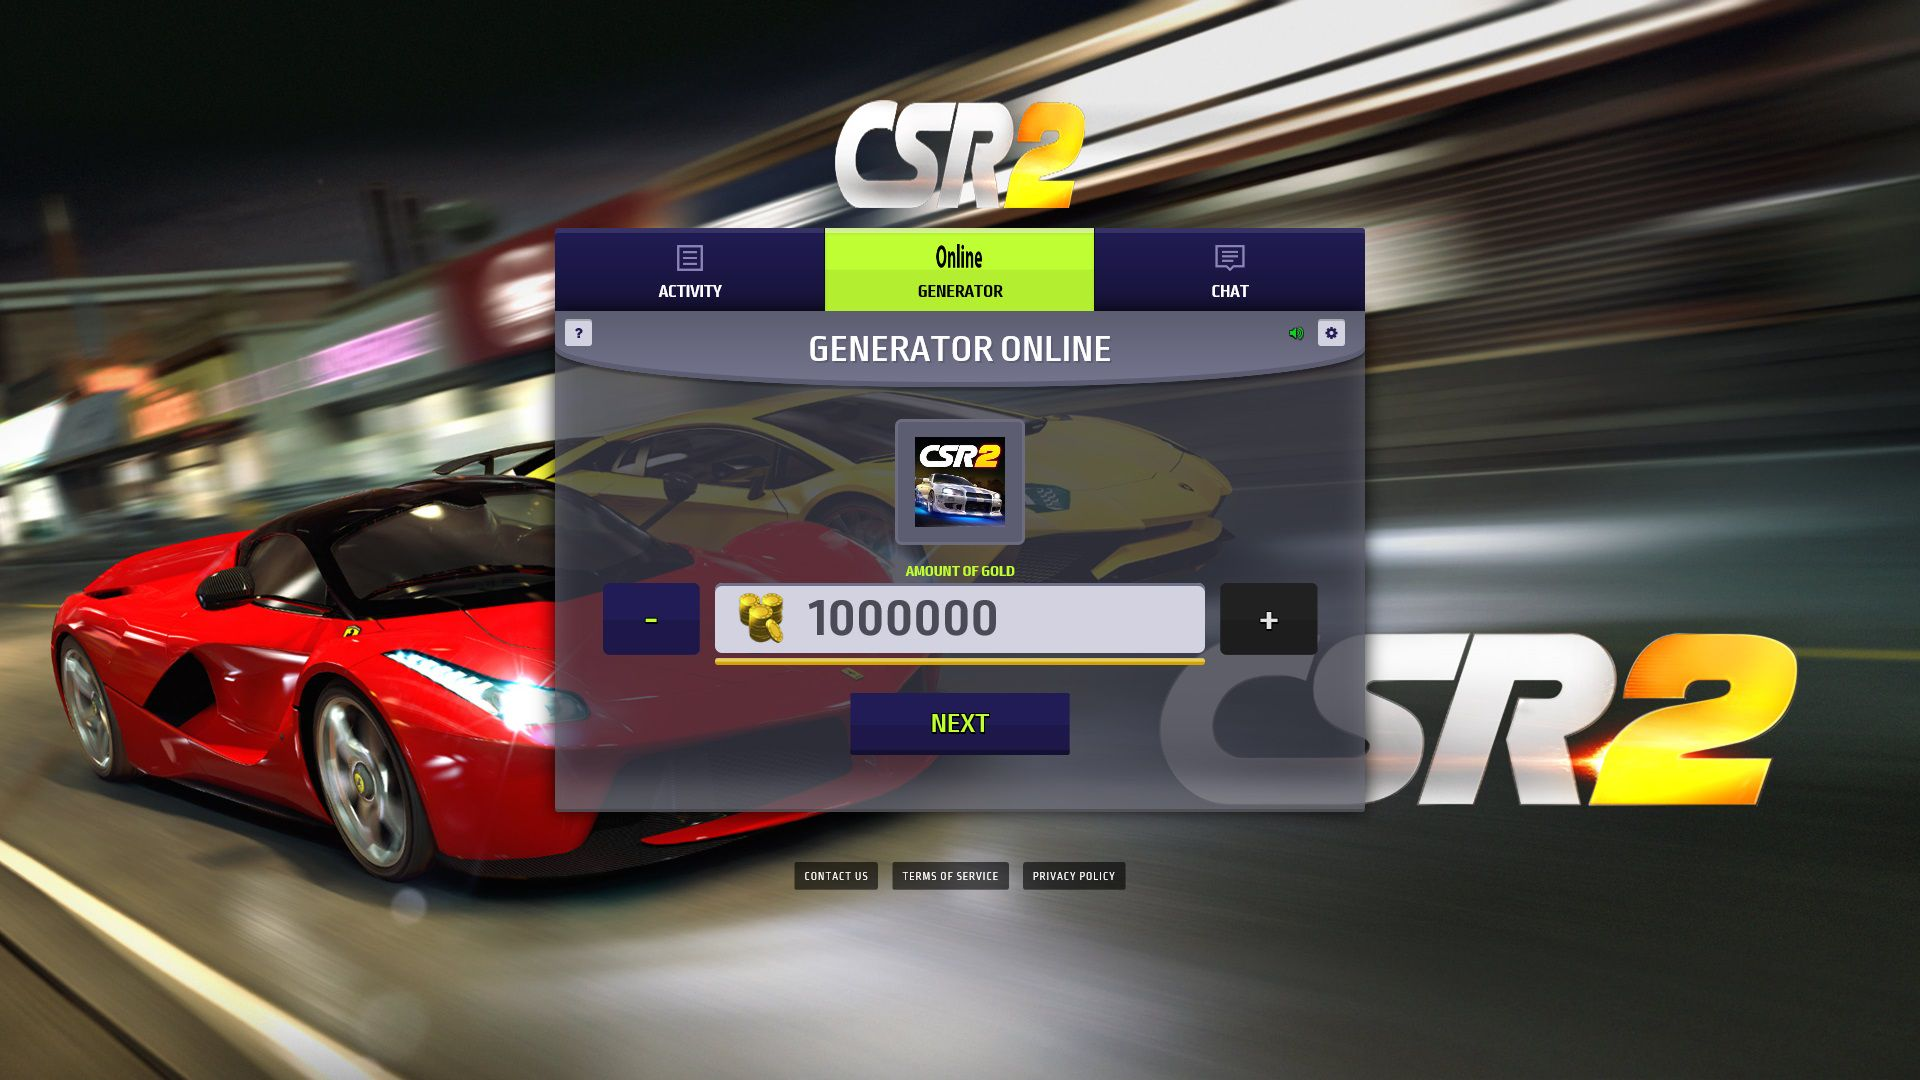 Csr racing 2 gold keys hack ios | CSR2 Hack  2019-08-14